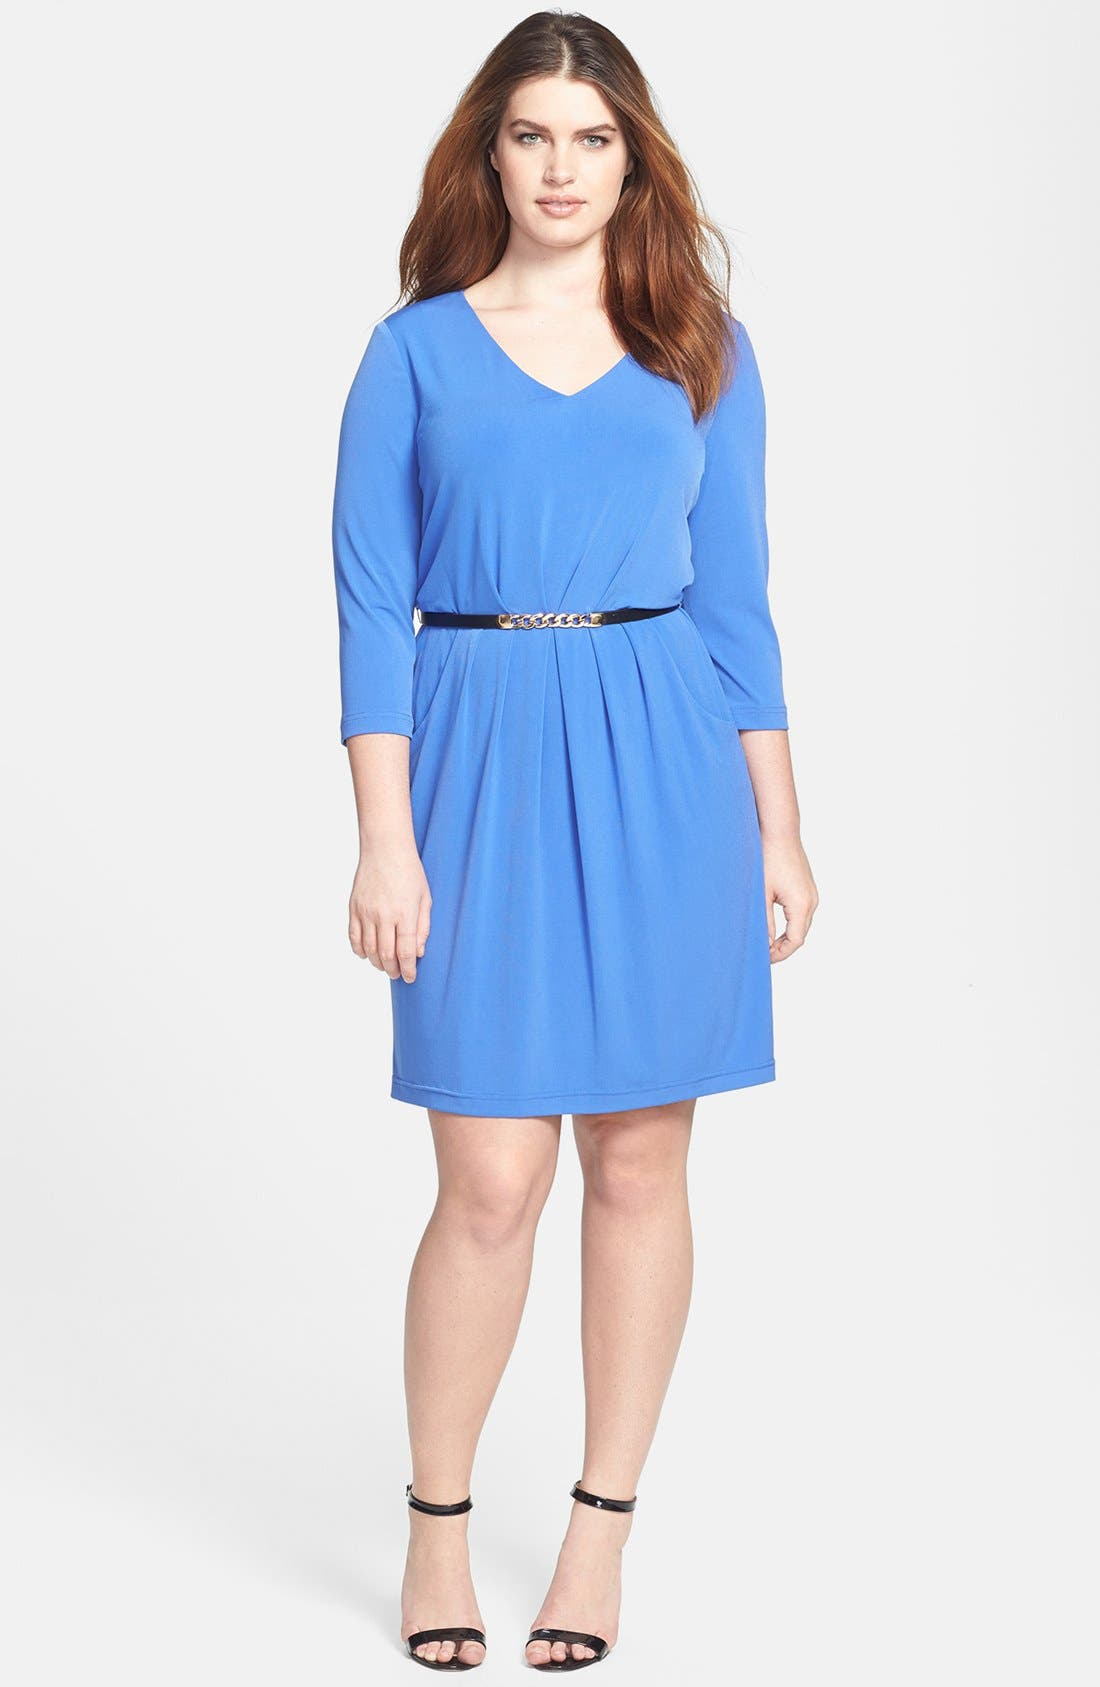 Alternate Image 1 Selected - Tahari by ASL Jersey A-Line Dress (Plus Size)